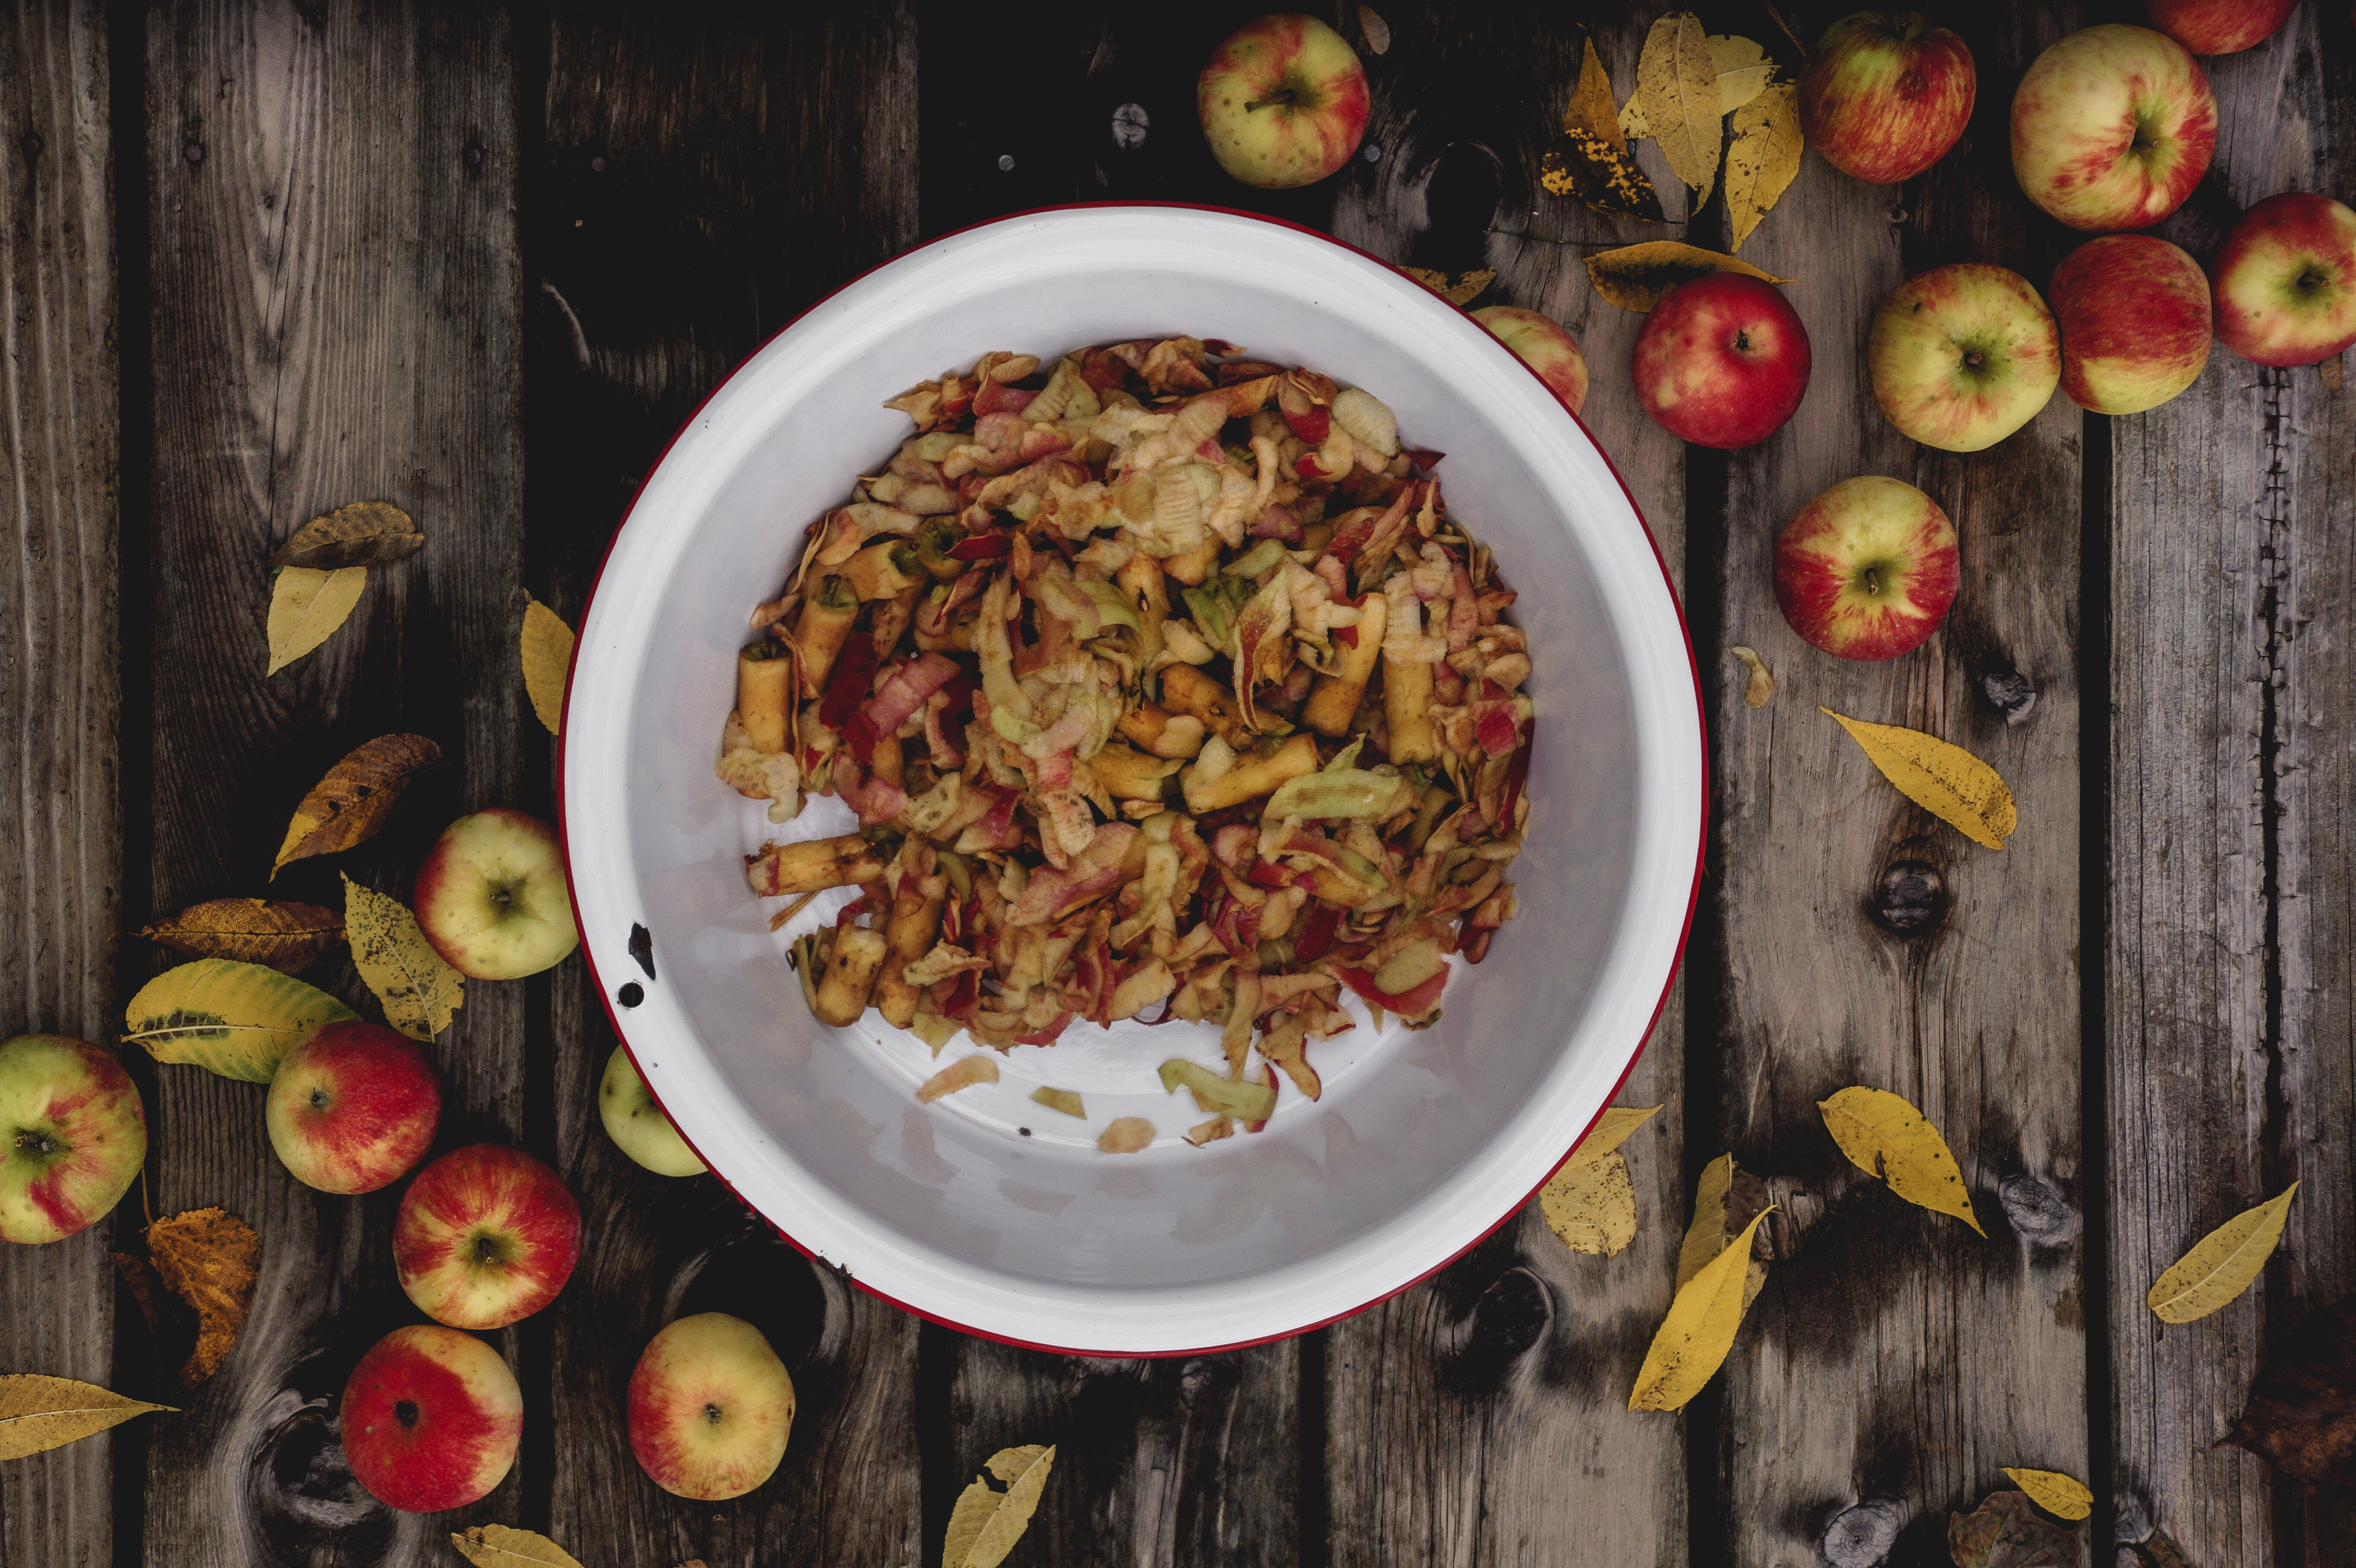 What can you make with apple peels, ways to use leftover apple peels, apple peel recipes, better than apple chips recipes, apple chips recipes, apple peel chips, apple peel panna cotta, apple recipes, easy apple dessert recipes, gluten free apple dessert recipes